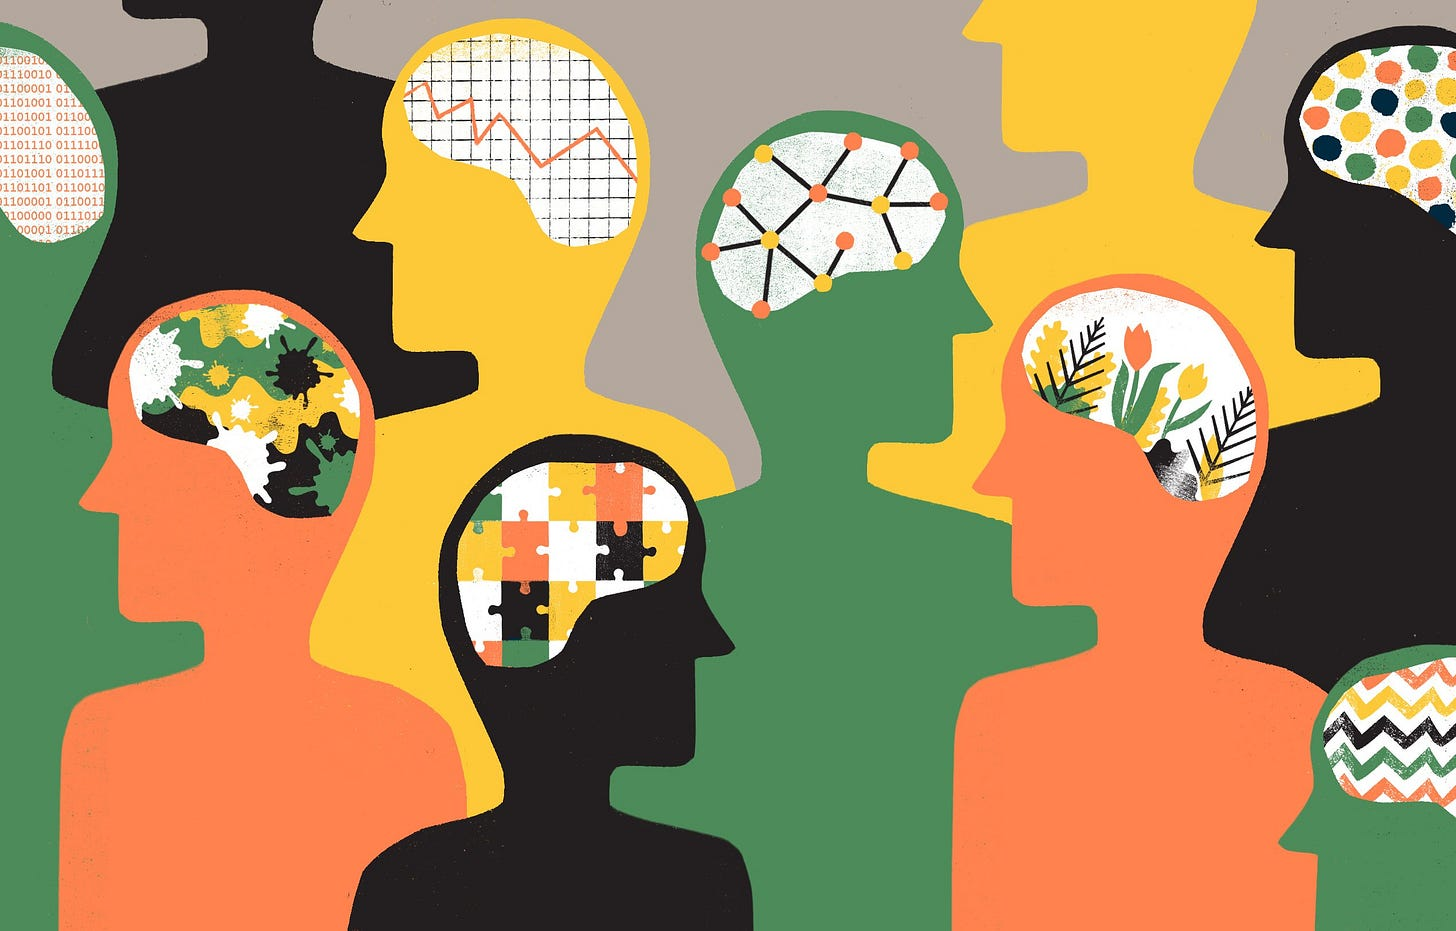 Why do we need personality tests to tell us who we are?